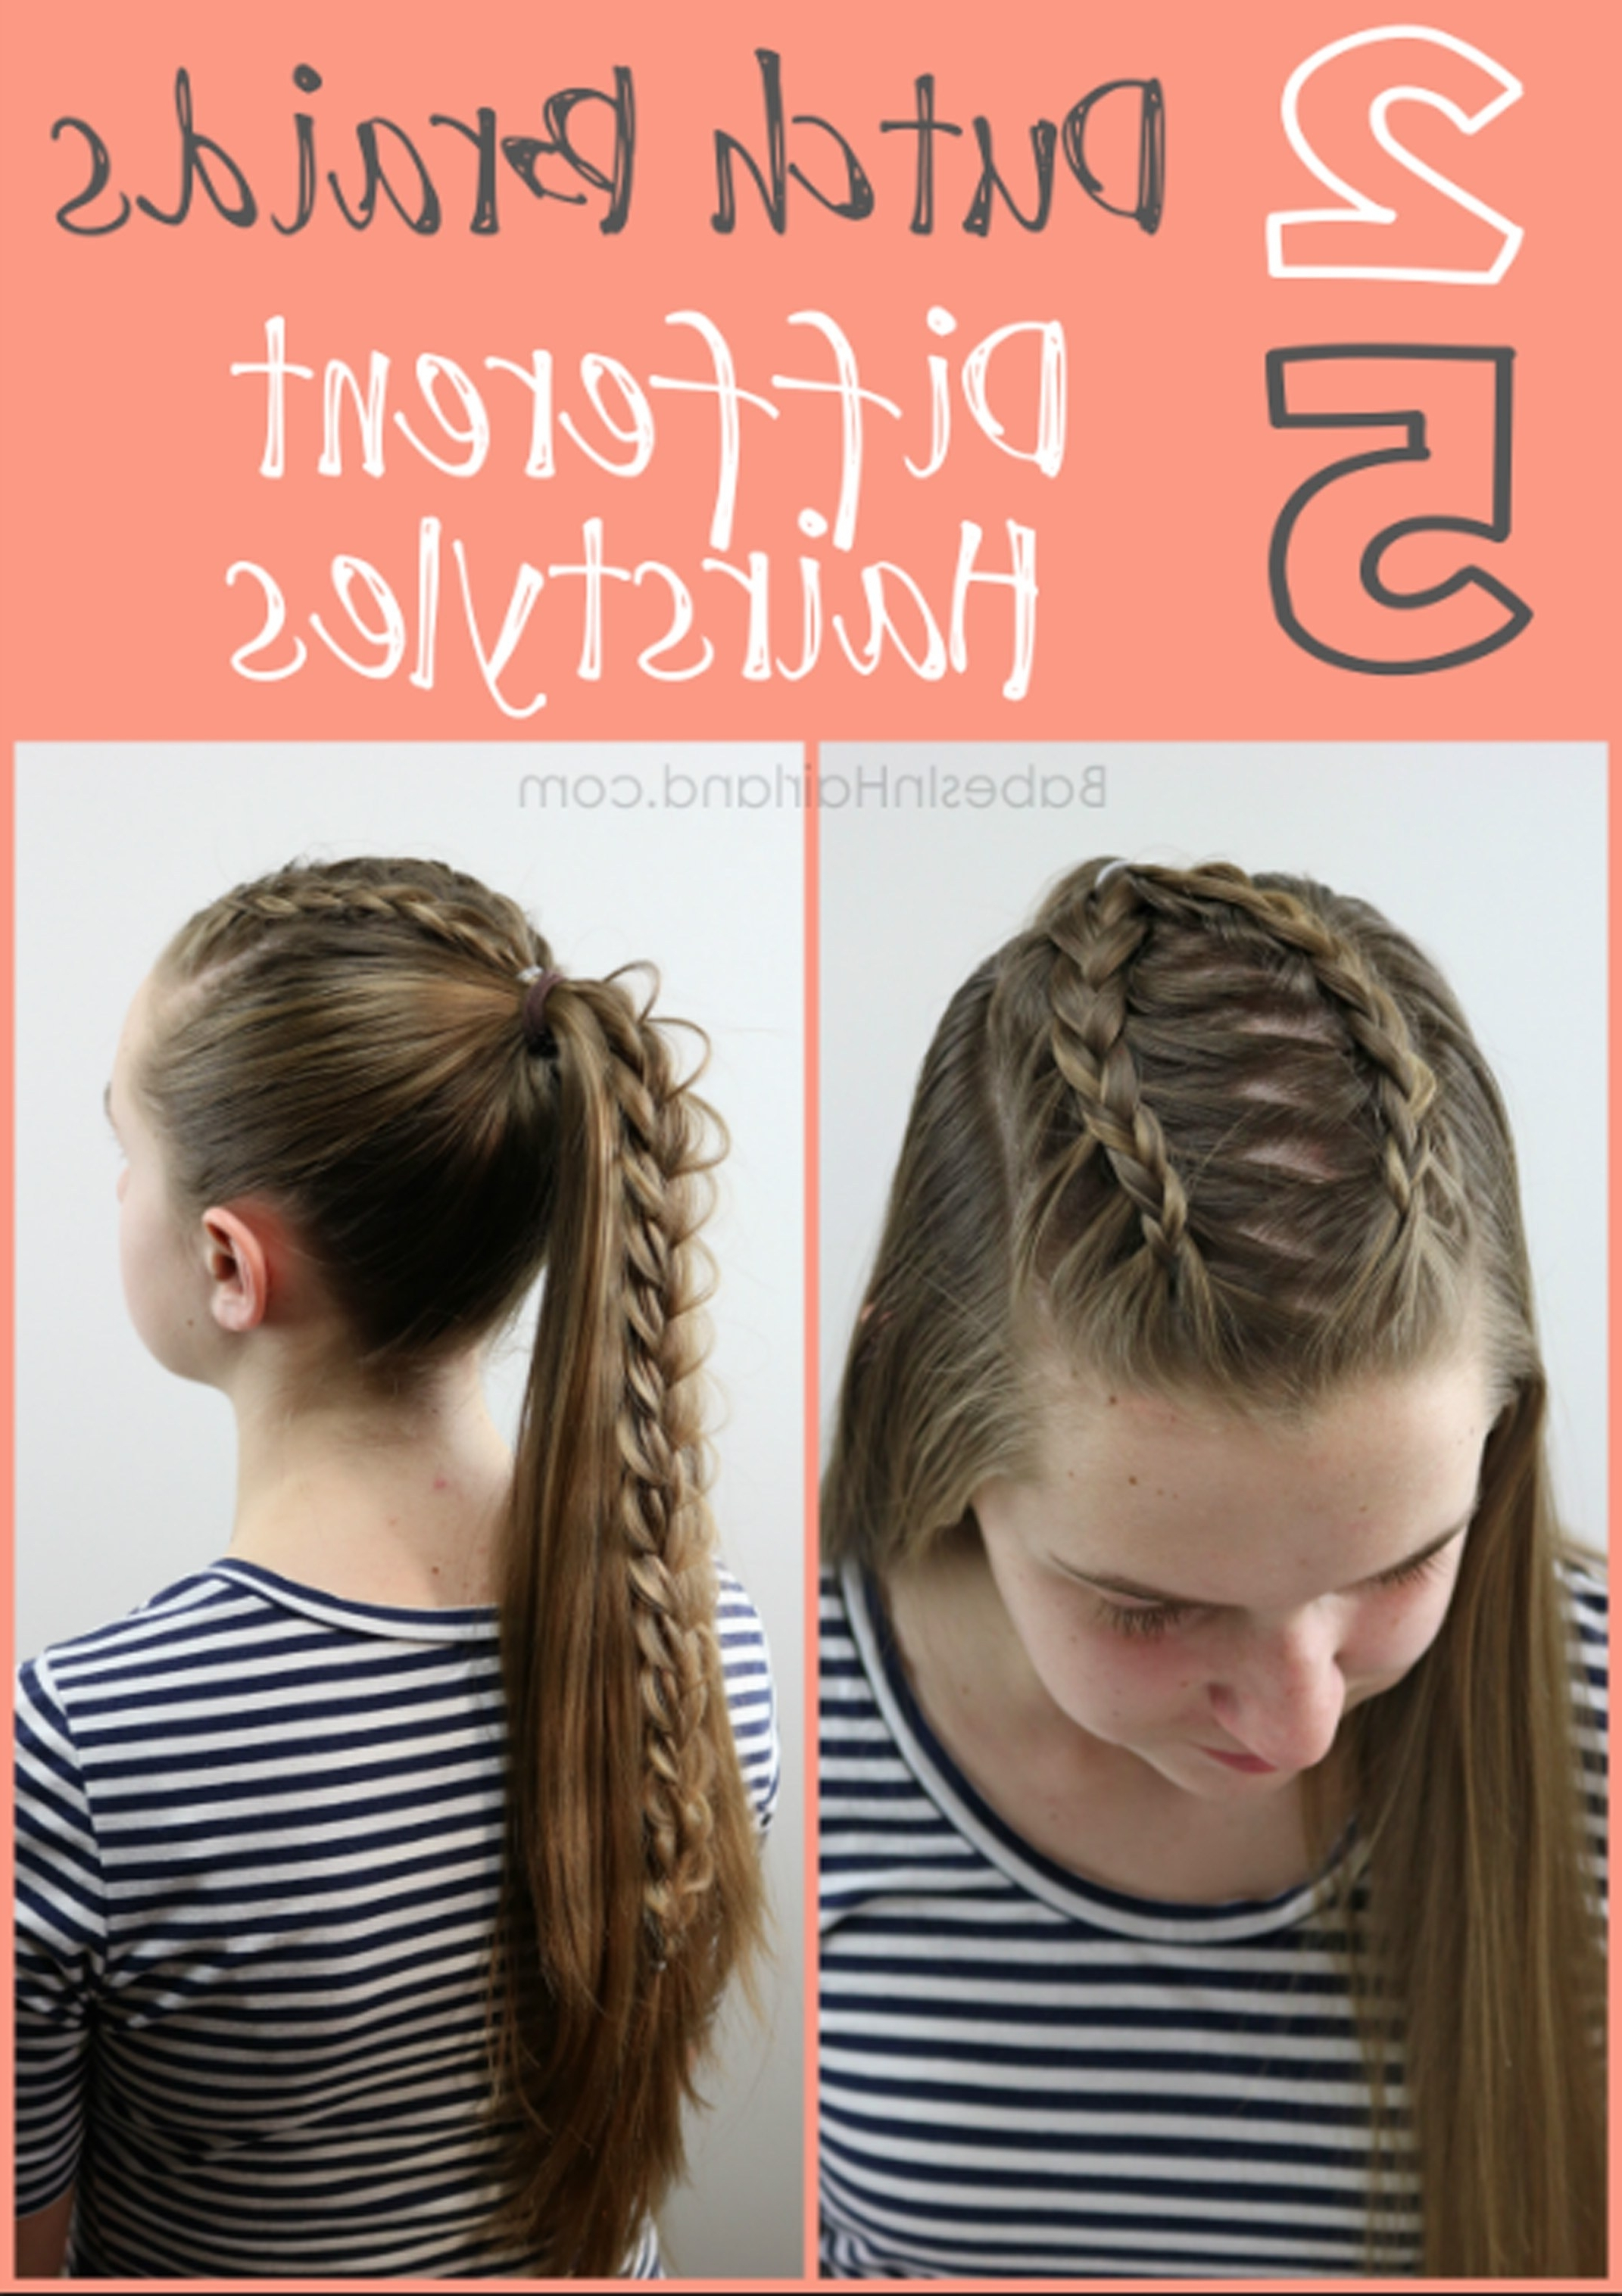 Babesinhairland Throughout Well Known Simple French Braids For Long Hair (View 5 of 15)